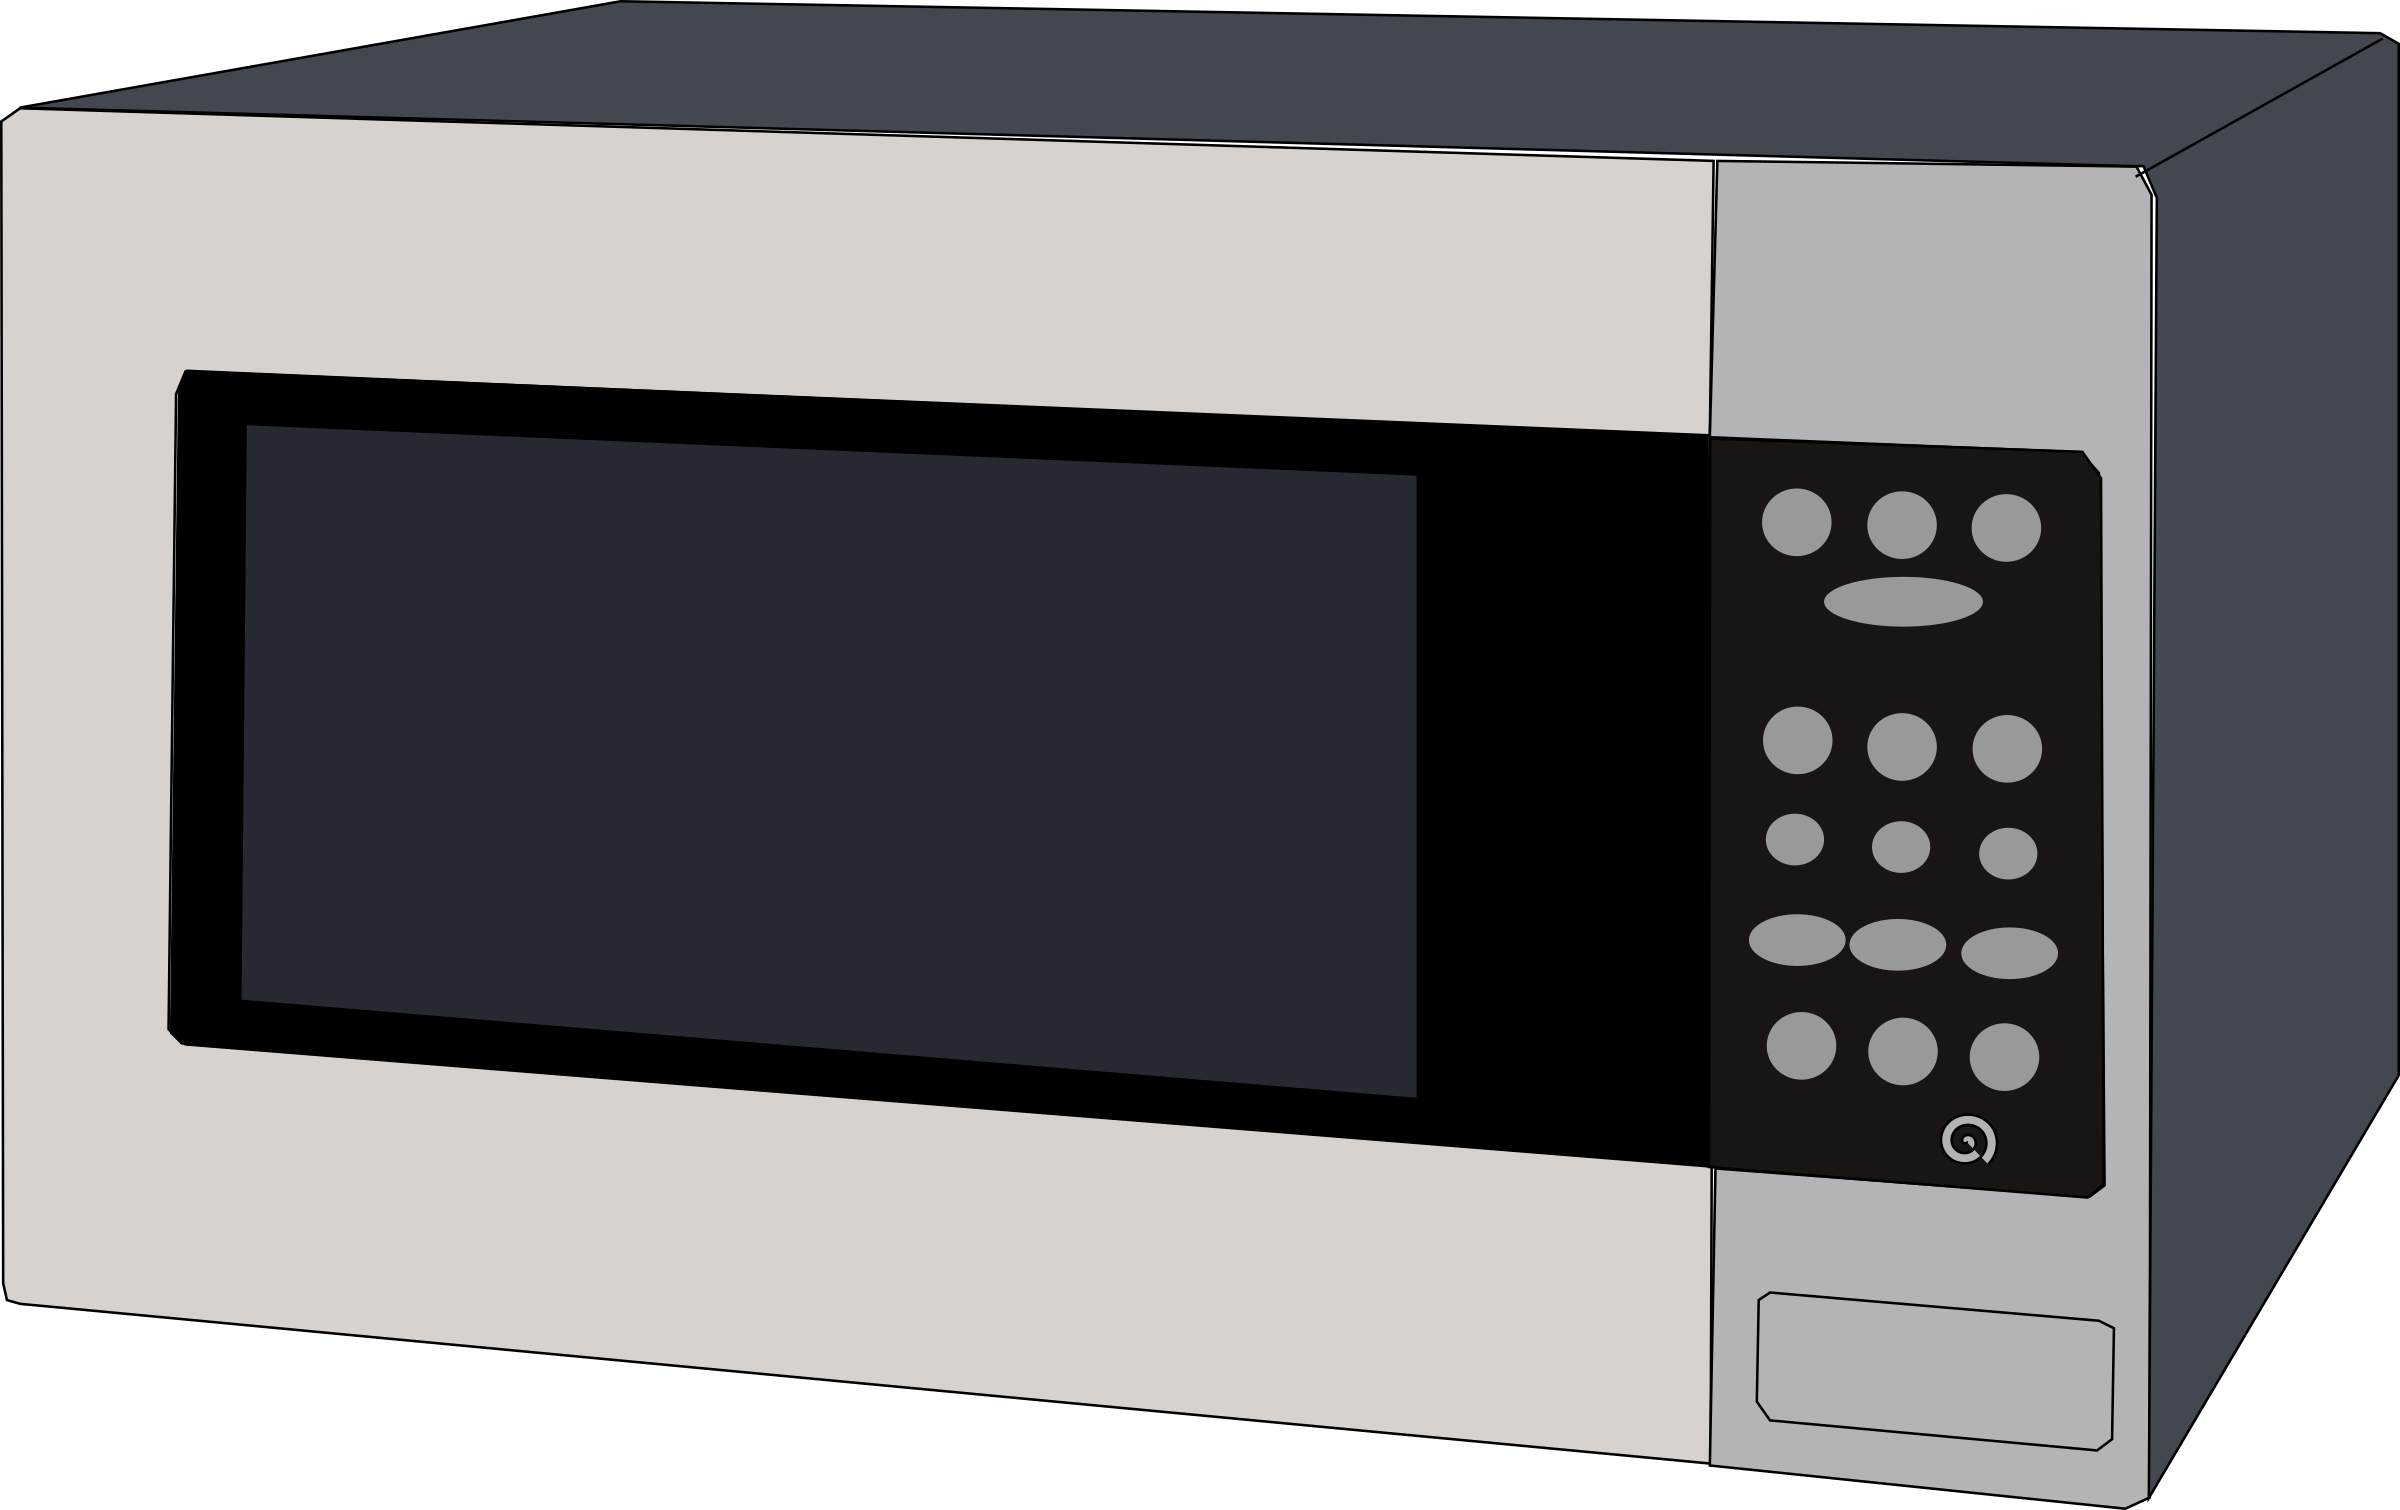 Microwave oven. Electrical clipart home appliance